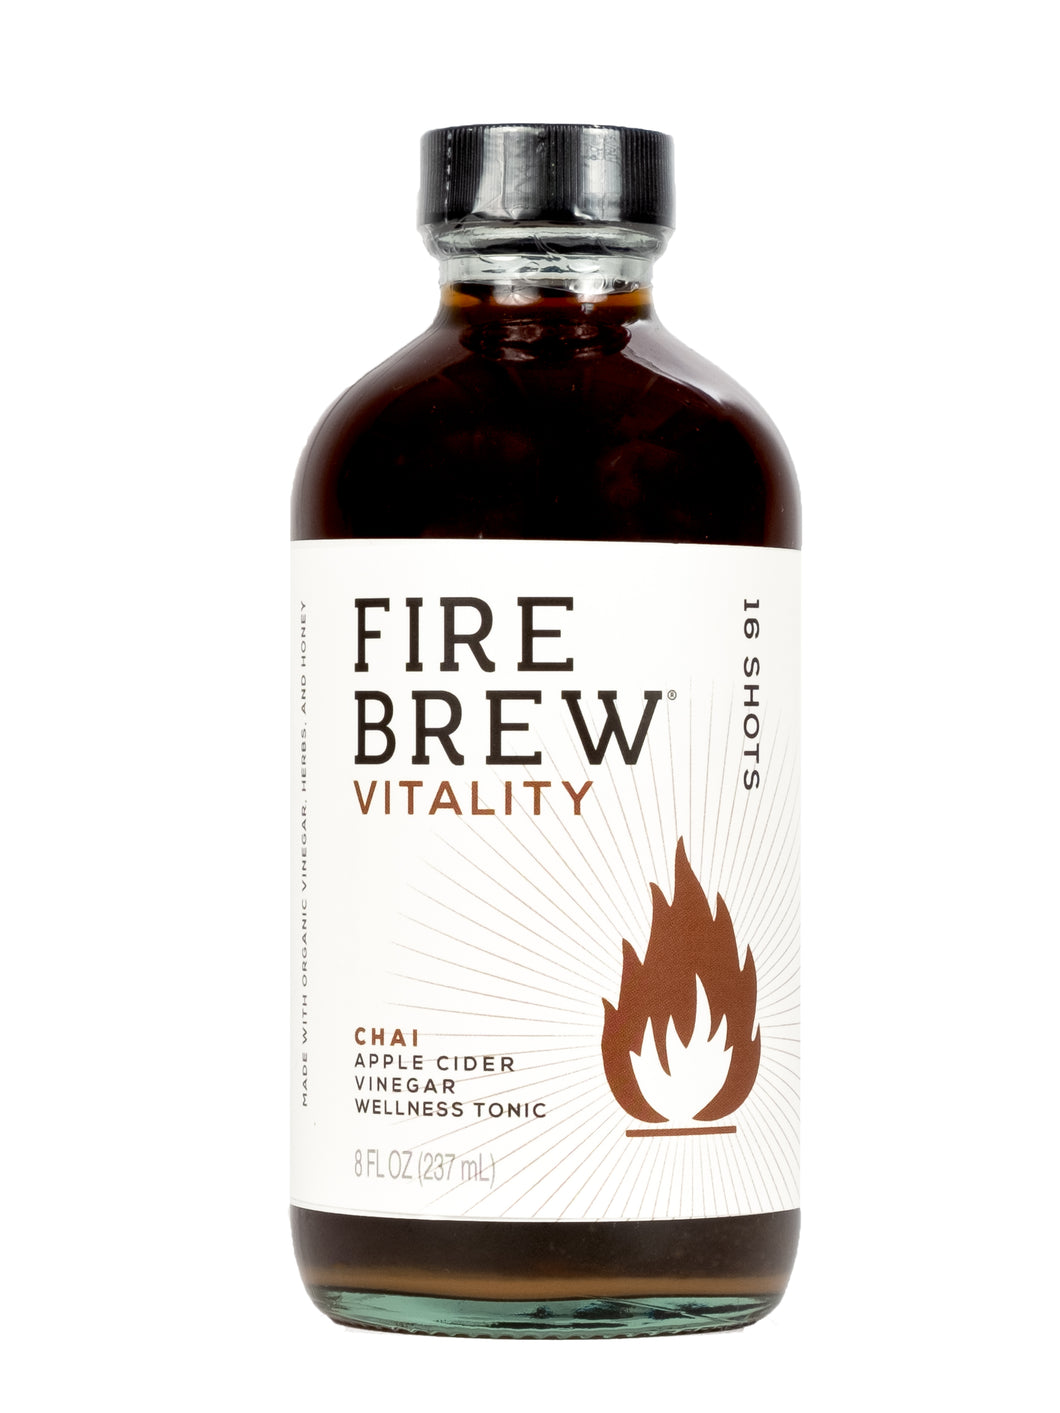 Fire Brew - Vitality Chai Apple Cider Vinegar (Fire Cider) Tonic